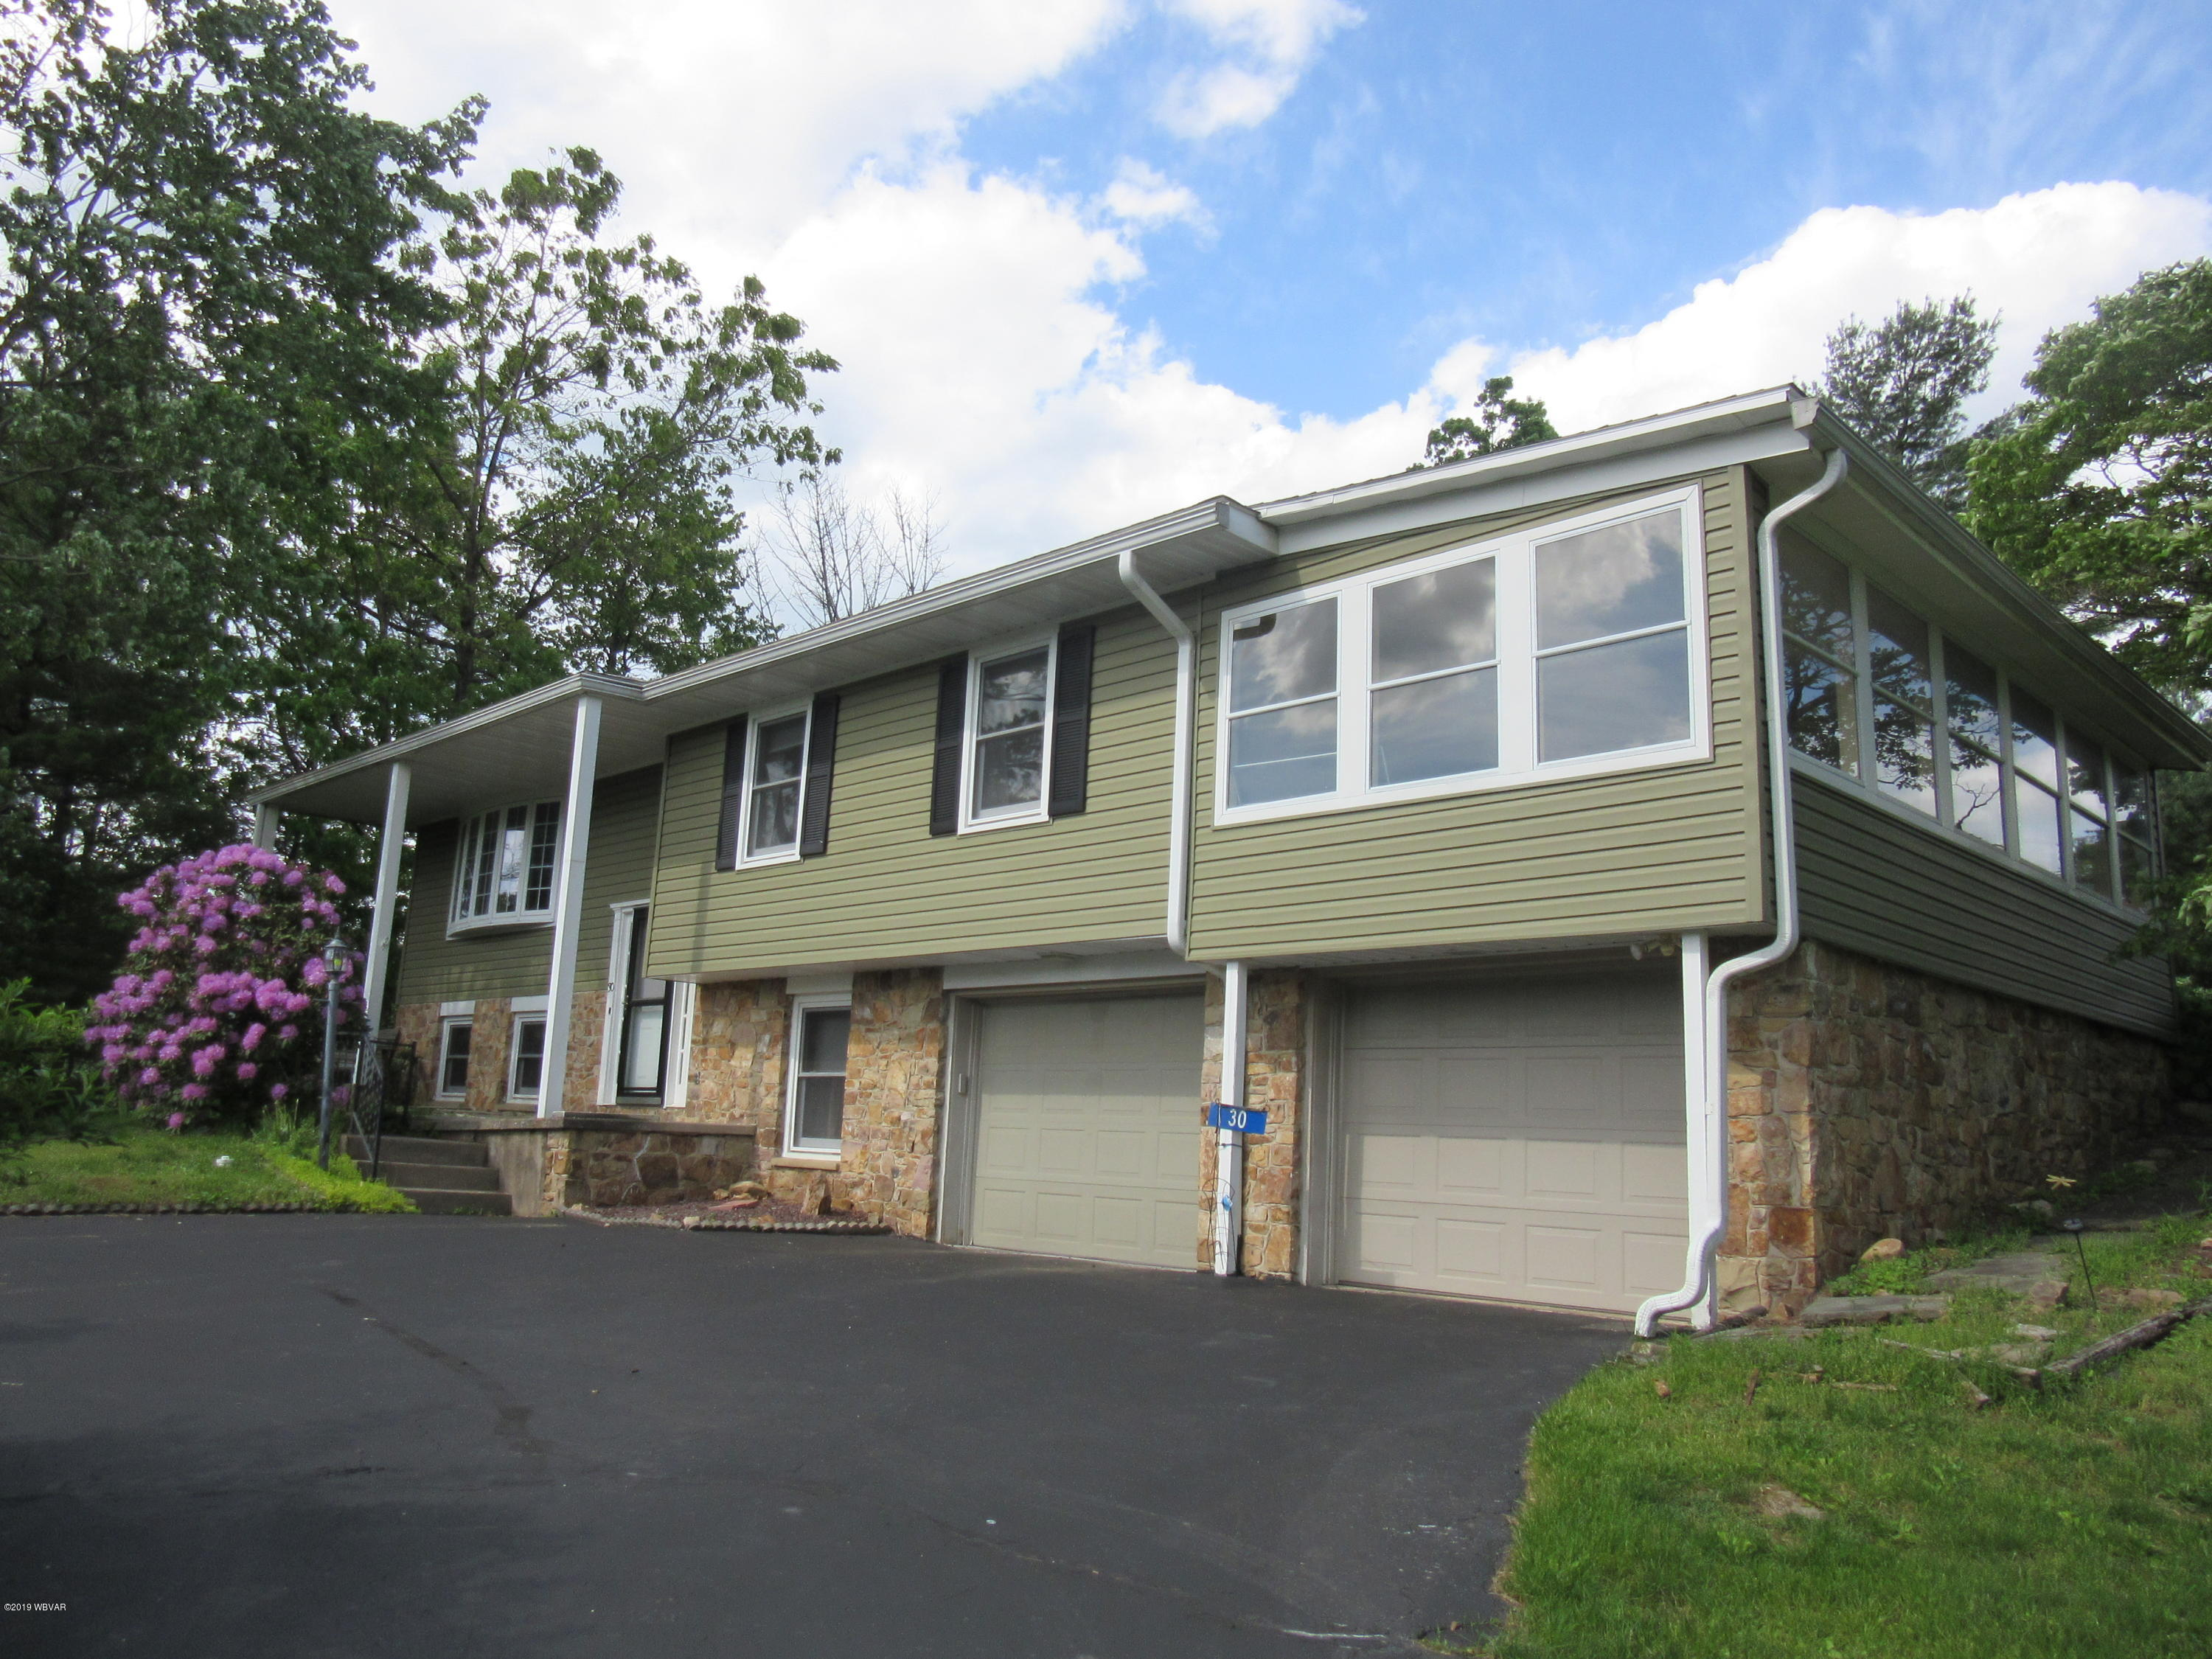 30 MOUNTAIN VIEW DRIVE,Lock Haven,PA 17745,4 Bedrooms Bedrooms,1.25 BathroomsBathrooms,Residential,MOUNTAIN VIEW,WB-87400